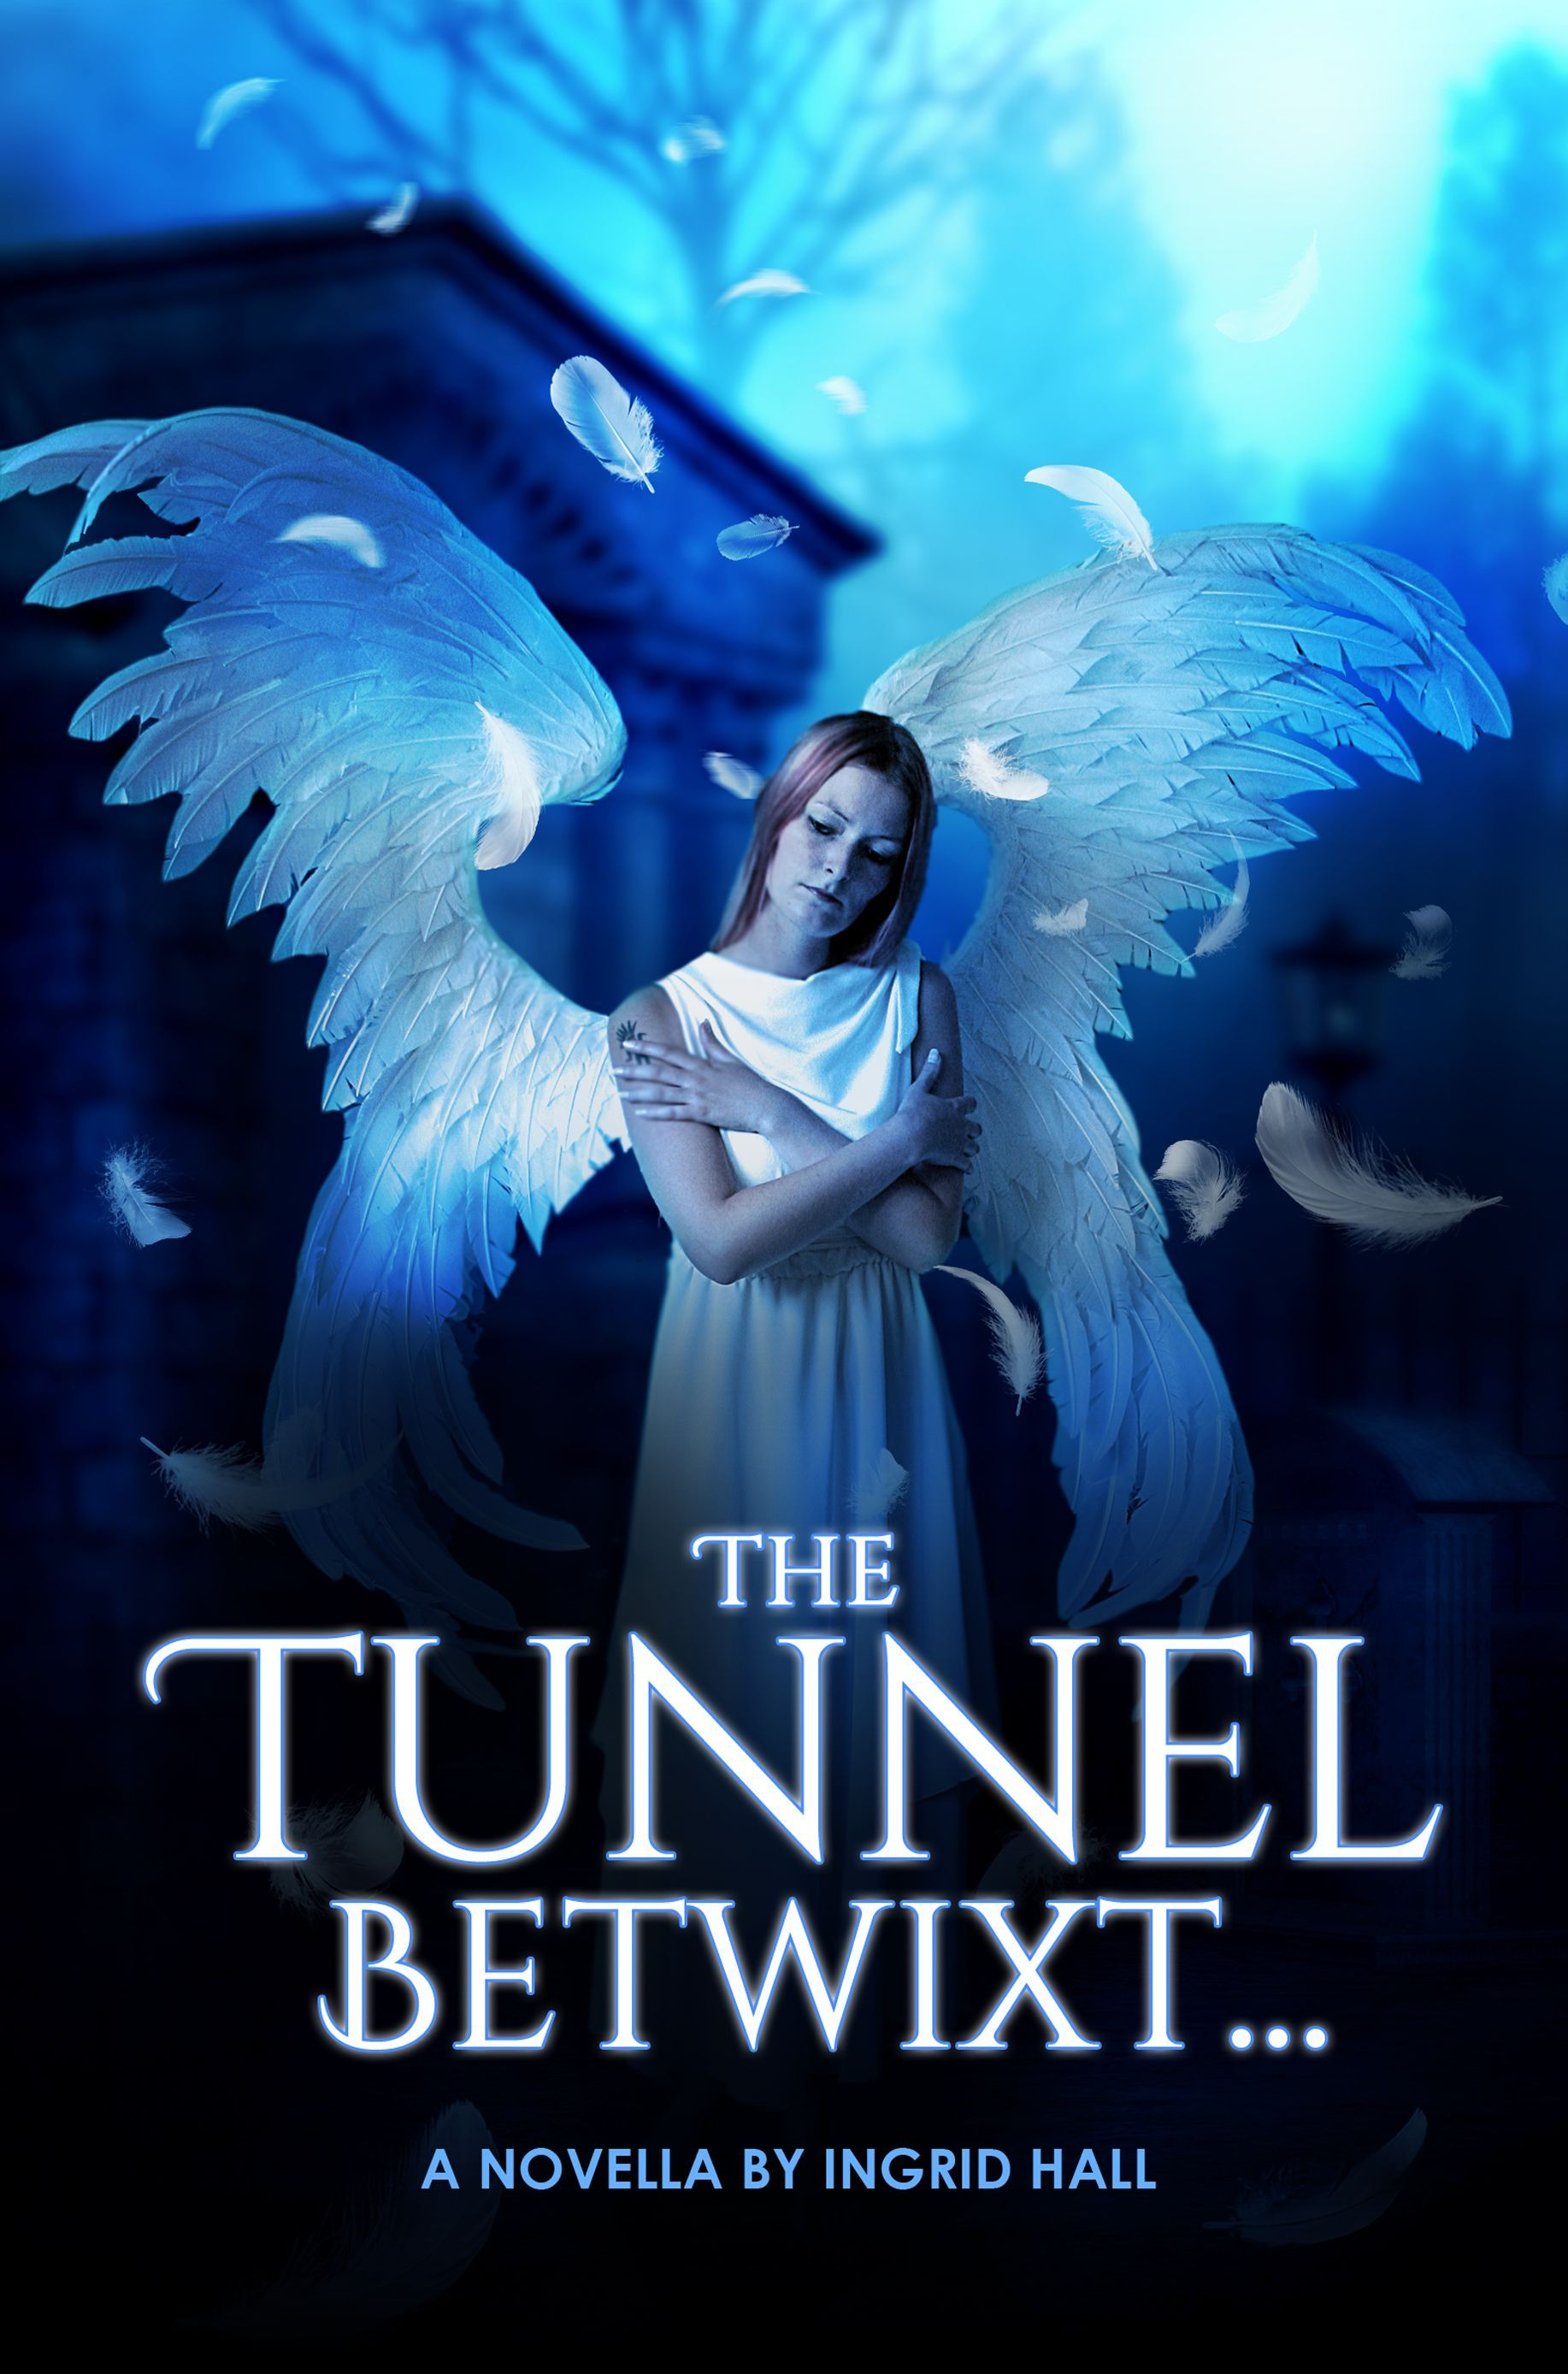 The Tunnel Betwixt by Ingrid Hall